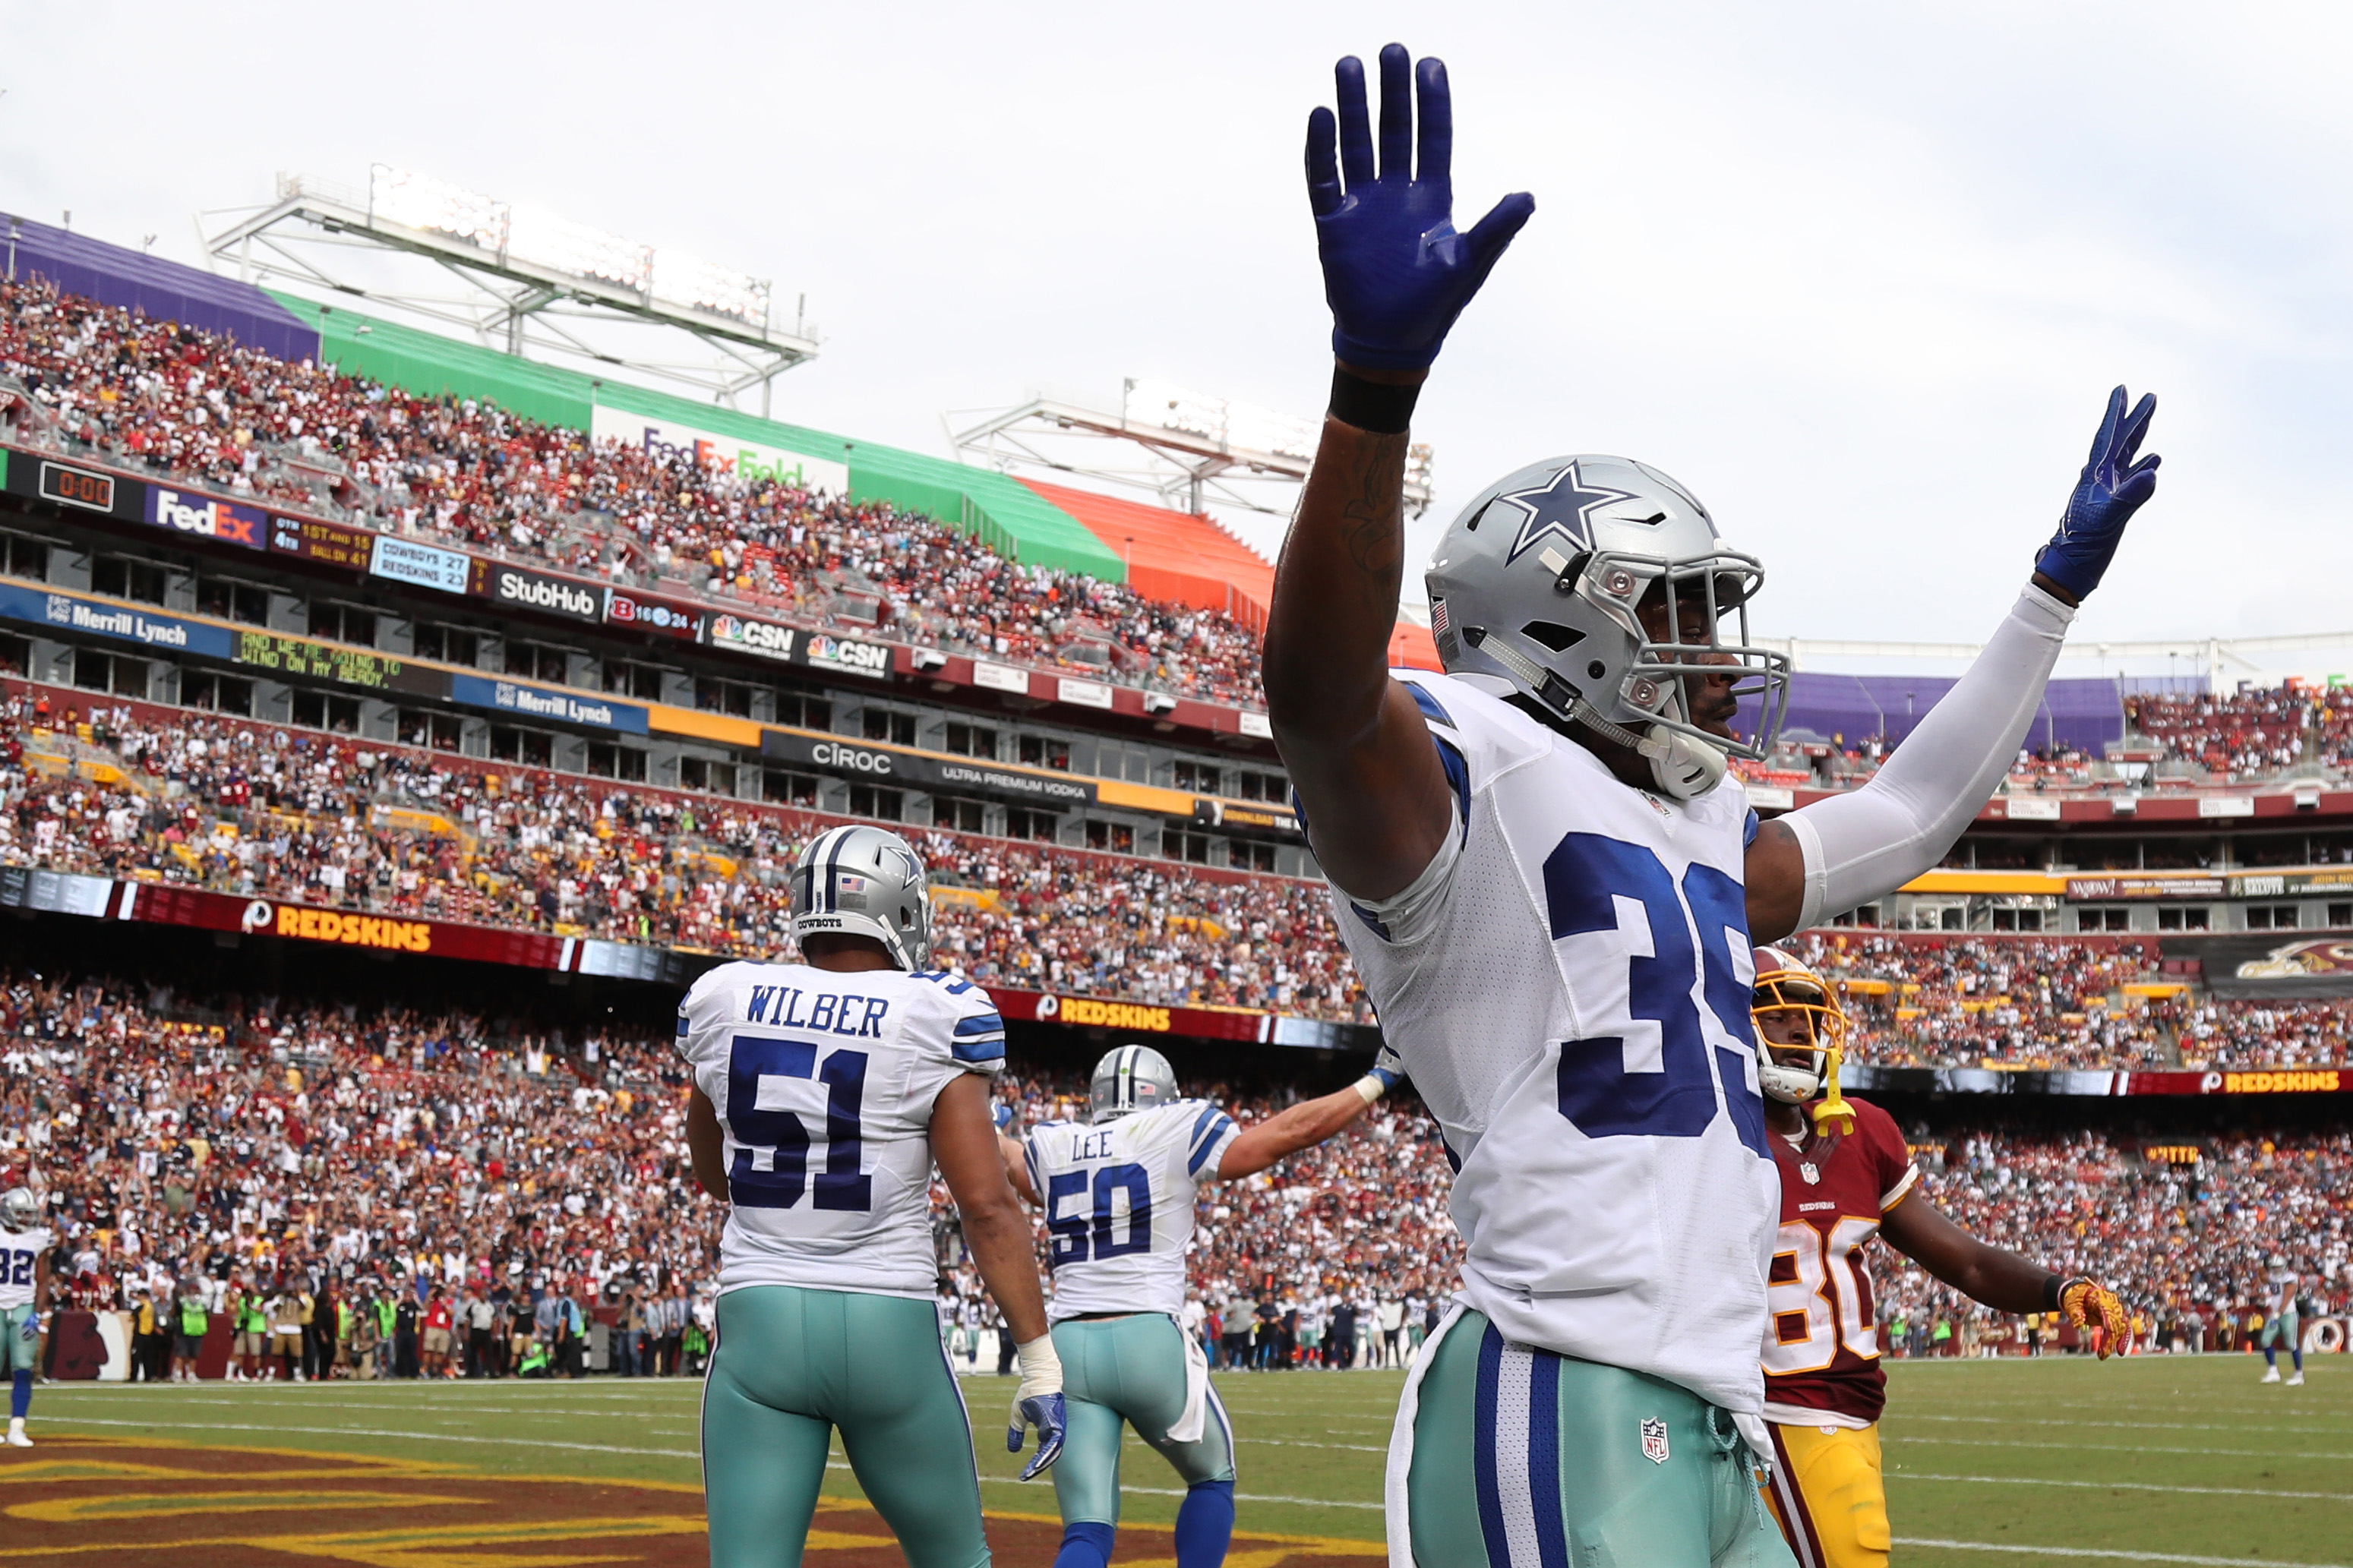 Sep 18, 2016; Landover, MD, USA; Dallas Cowboys cornerback Brandon Carr (39) celebrates after the Cowboys' game against the Washington Redskins at FedEx Field. The Cowboys won 27-23. Mandatory Credit: Geoff Burke-USA TODAY Sports